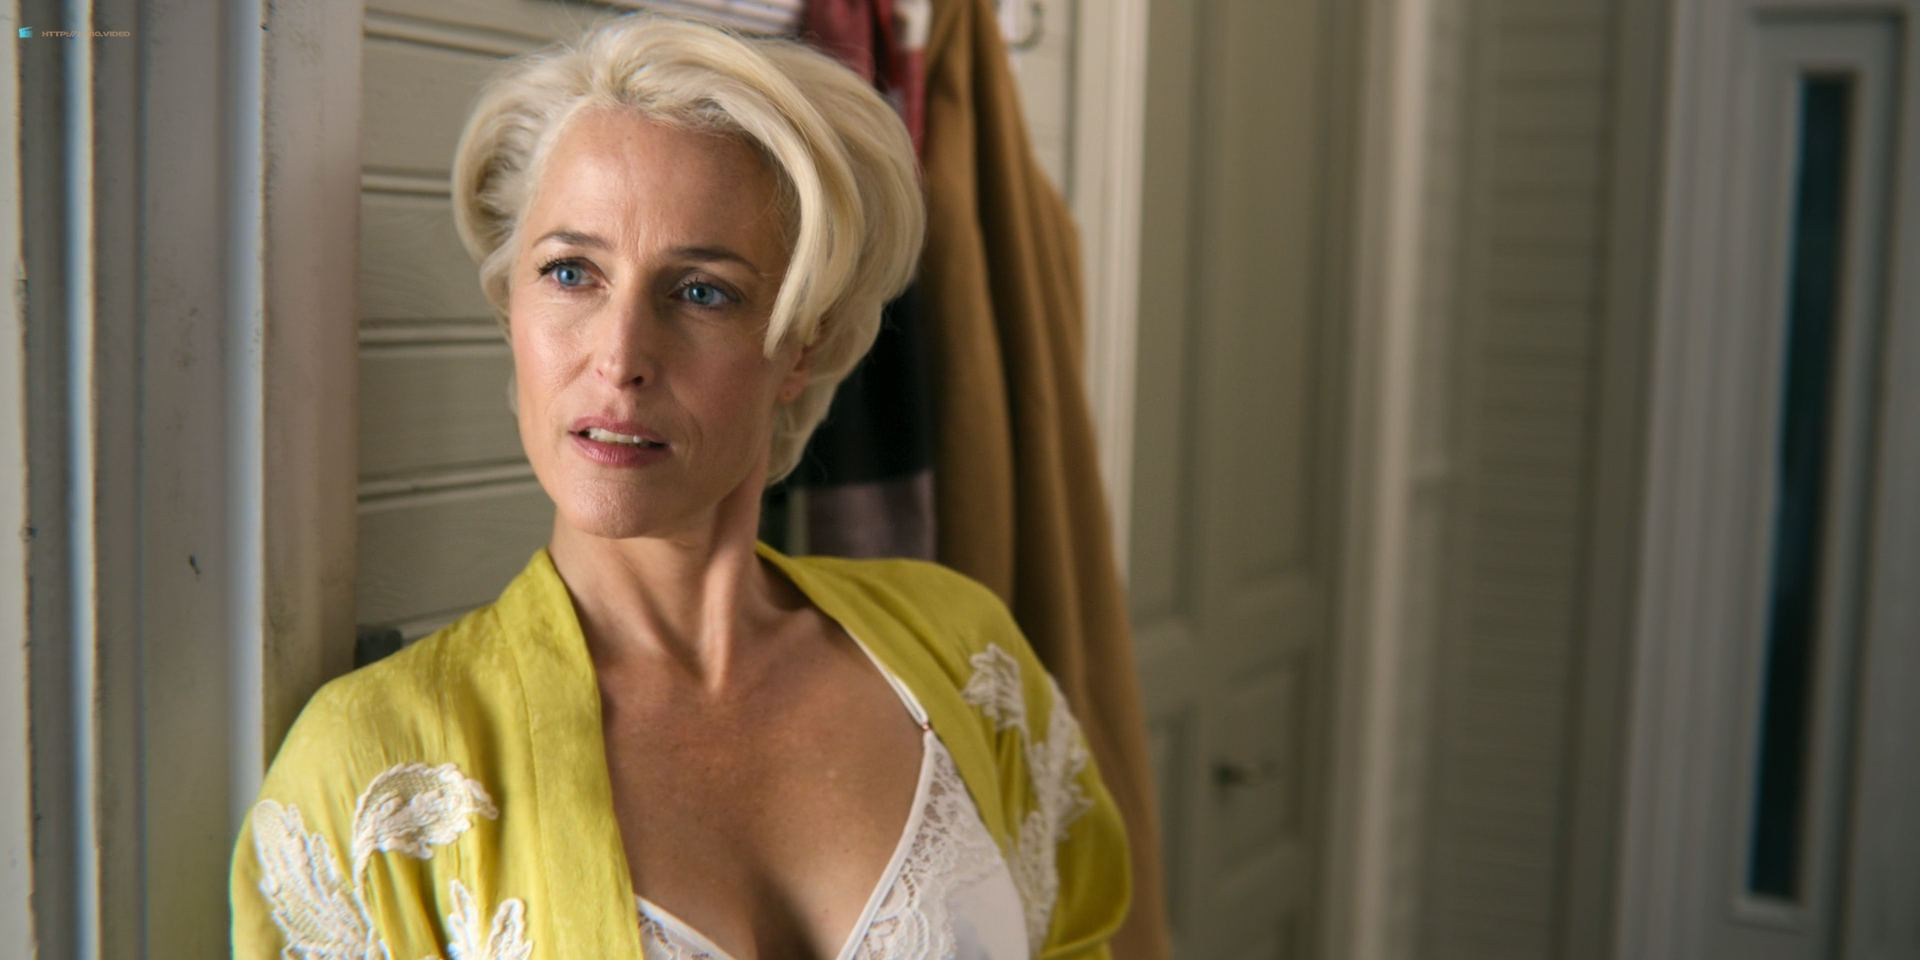 0013033650732_05_Tanya-Reynolds-nude-topless-Gillian-Anderson-hot-Sex-Education-2018-s1e3-HD-1080p-05.jpg